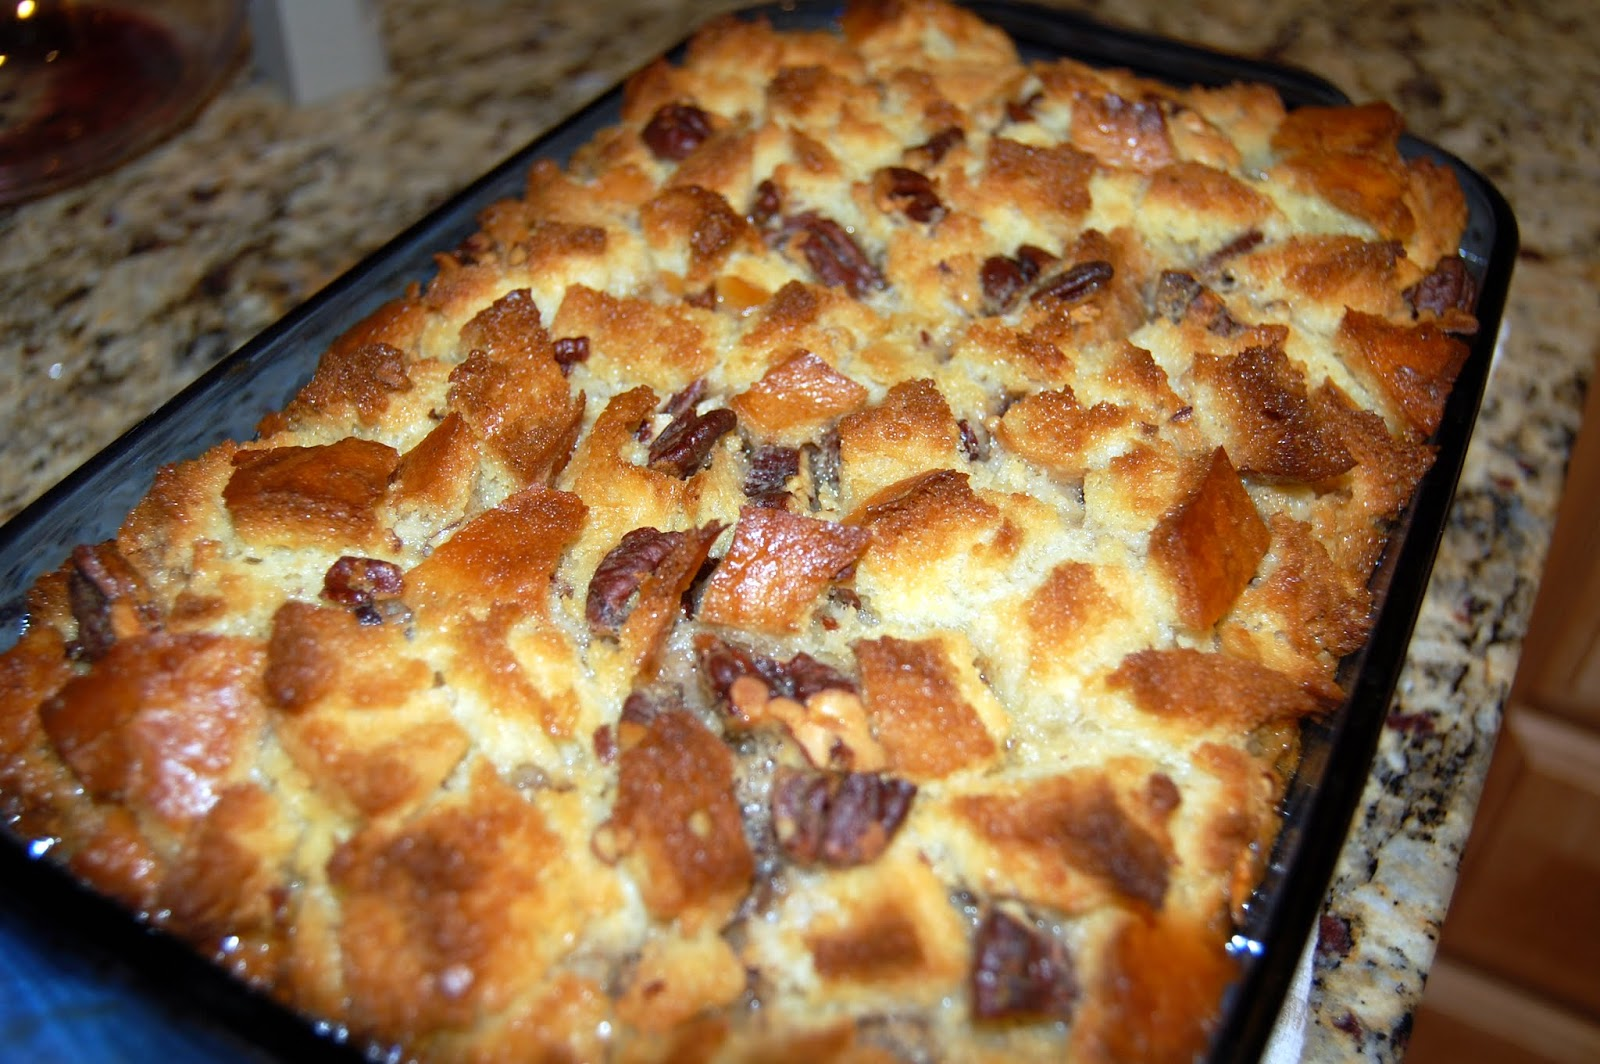 beer+bread+and+bread+pudding+037.jpg